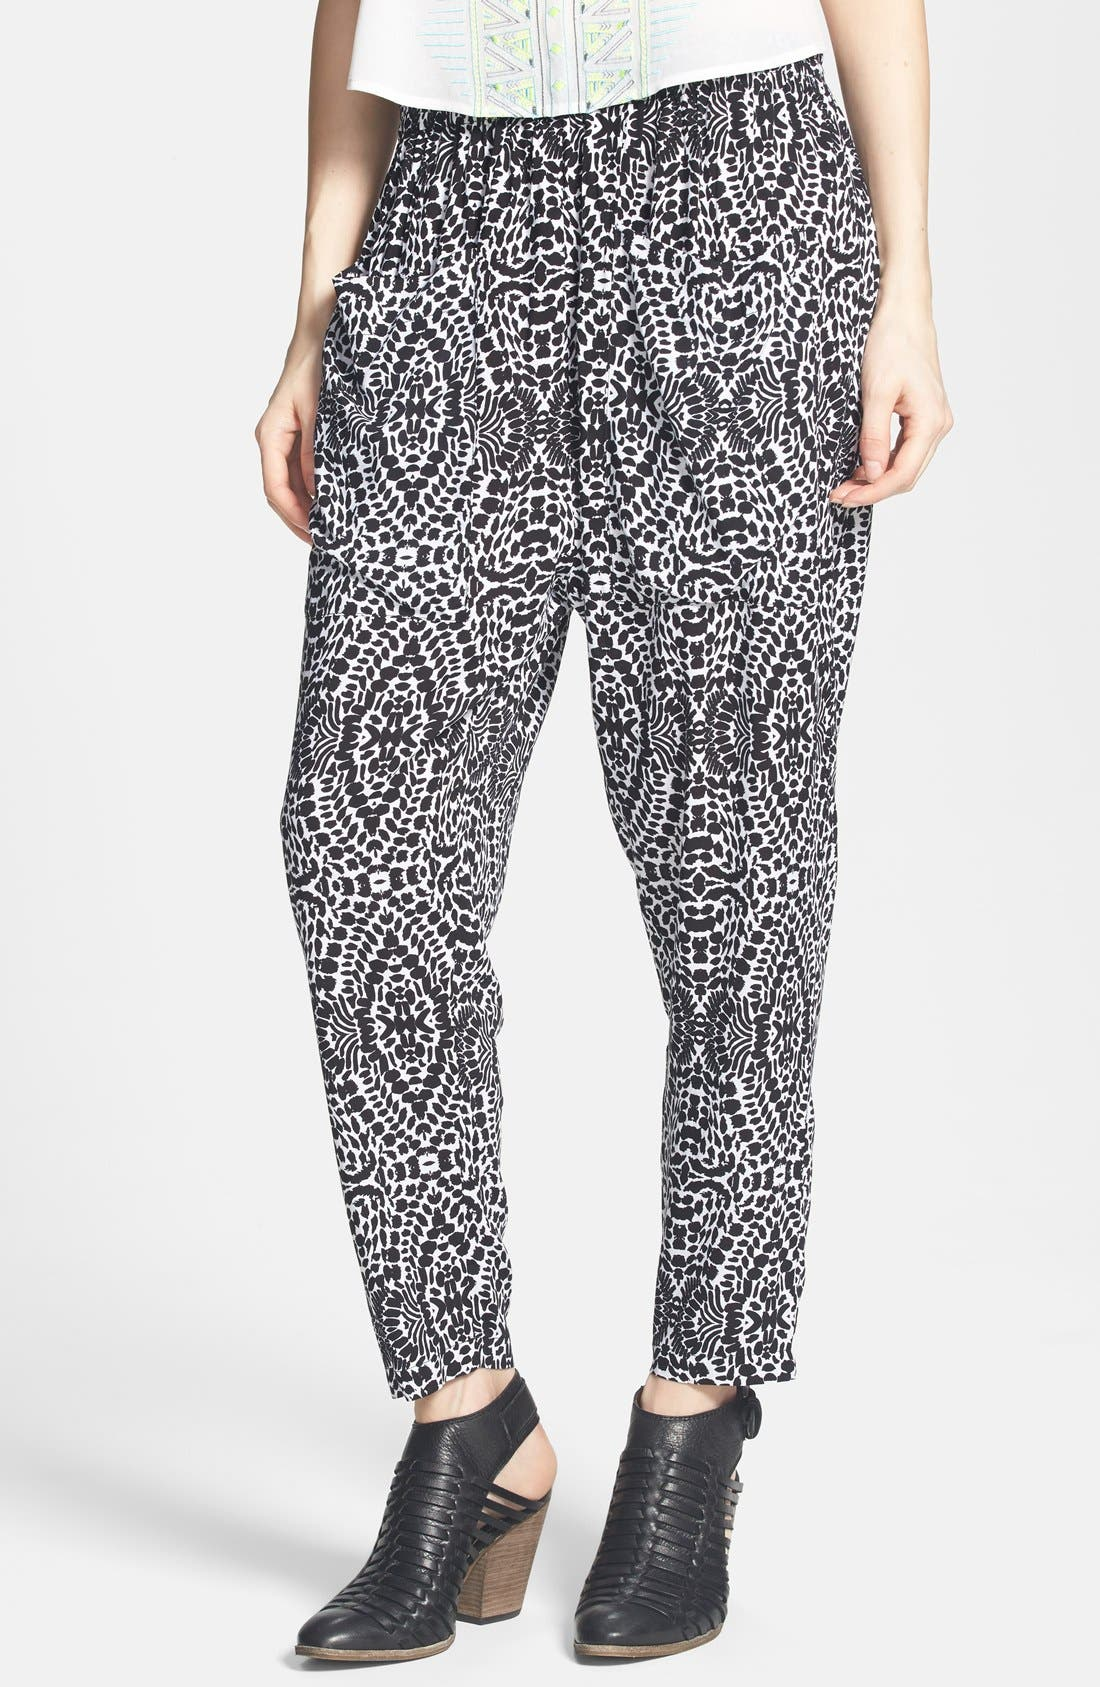 Alternate Image 1 Selected - Mimi Chica Print Harem Pants (Juniors) (Online Only)